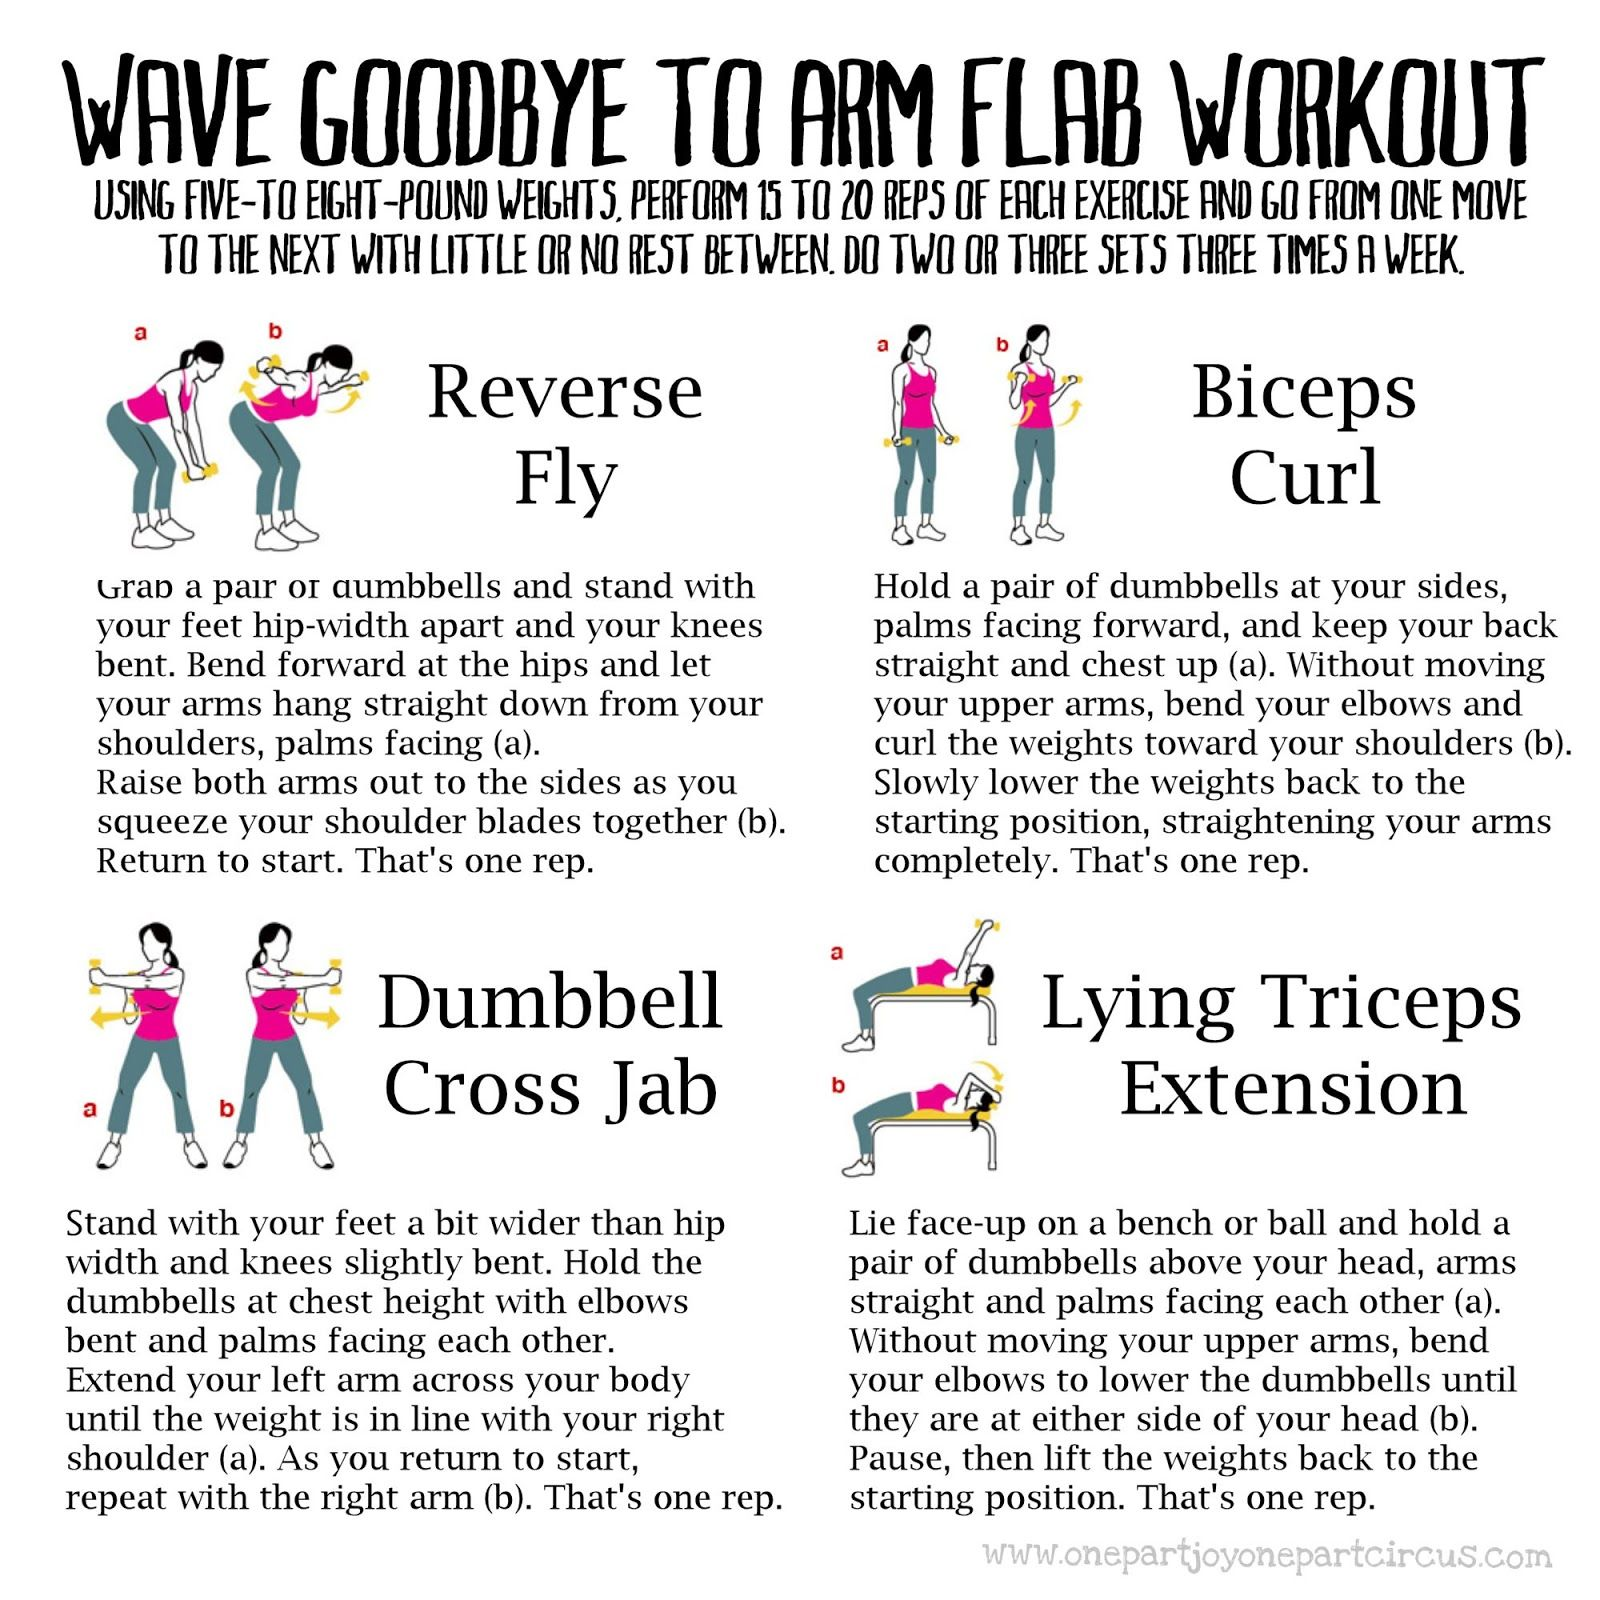 Goodbye arm flab workout using five to eight pound weights fitness workouts xflitez Images